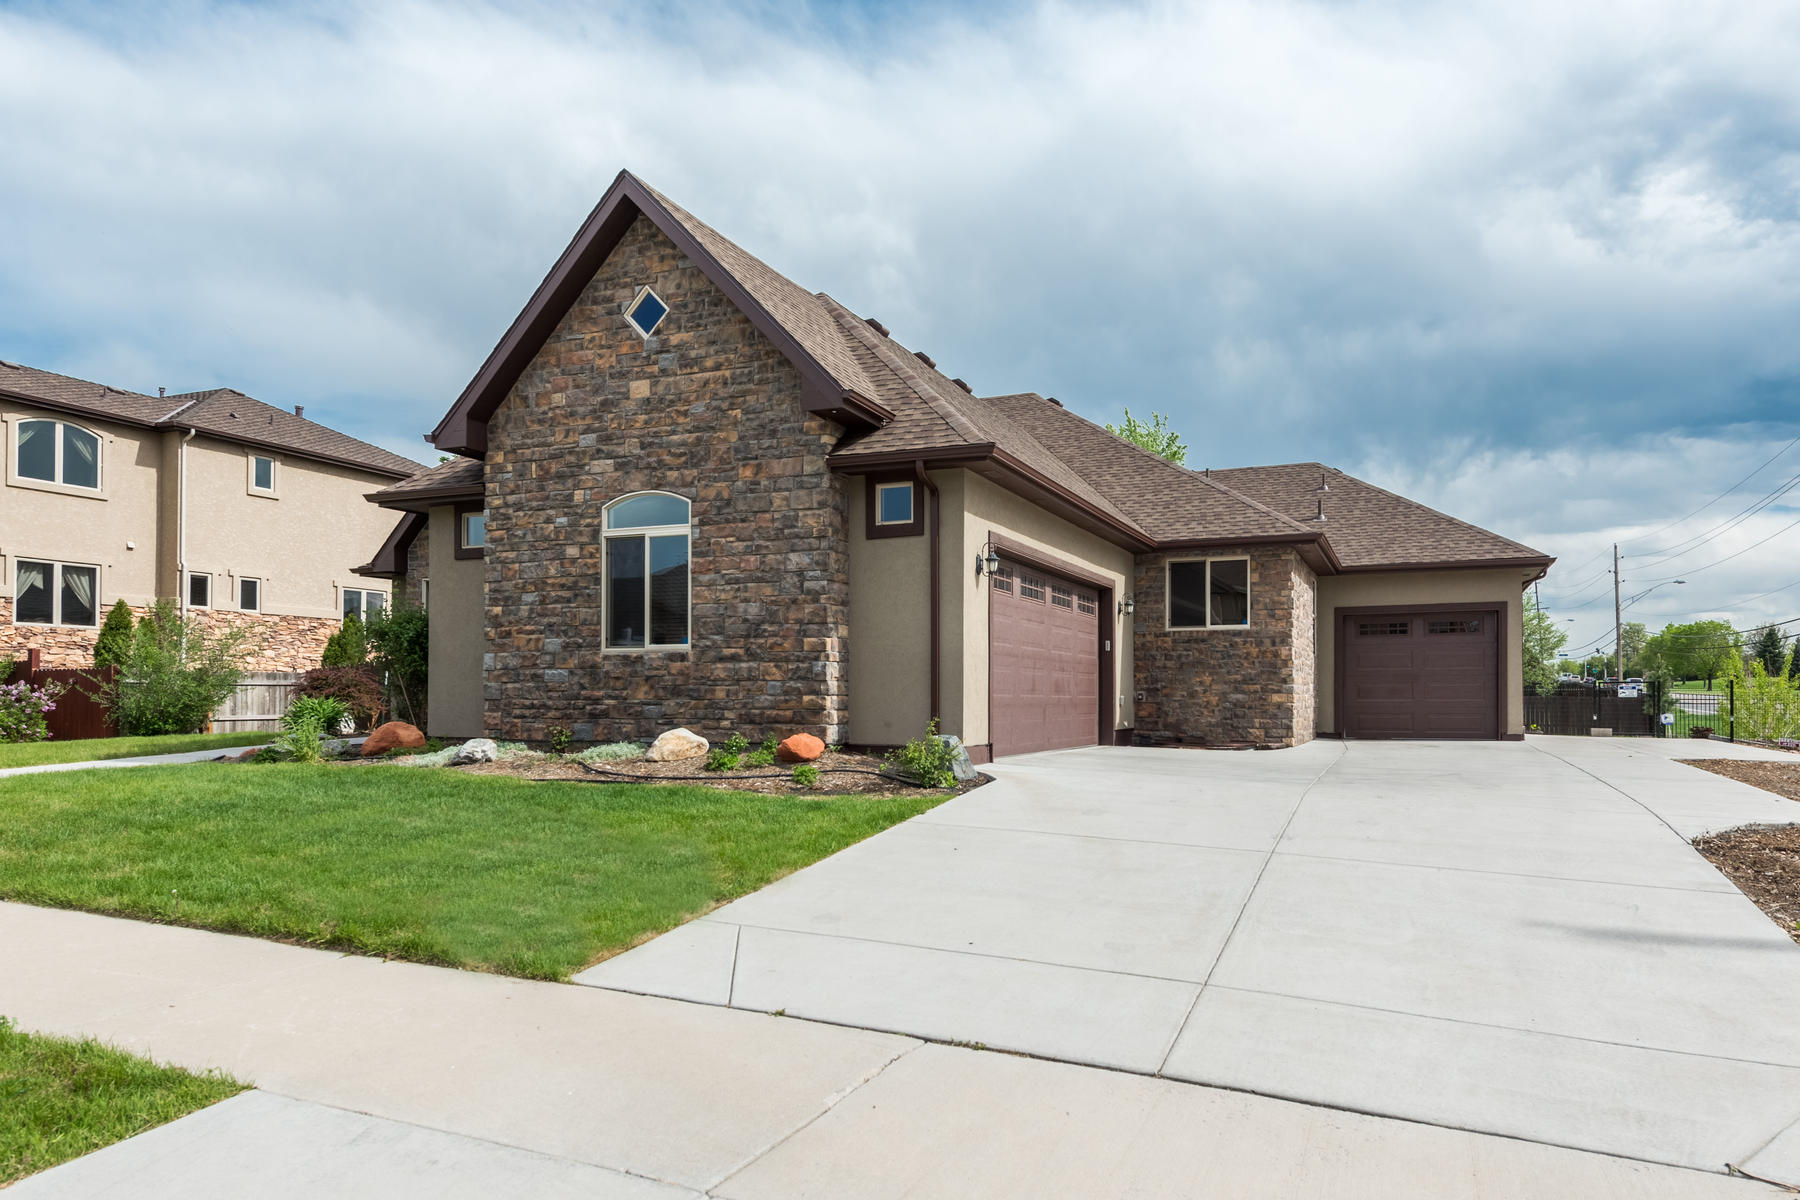 Single Family Home for Active at Grand Marquis 9180 W Virginia Ave Lakewood, Colorado 80226 United States